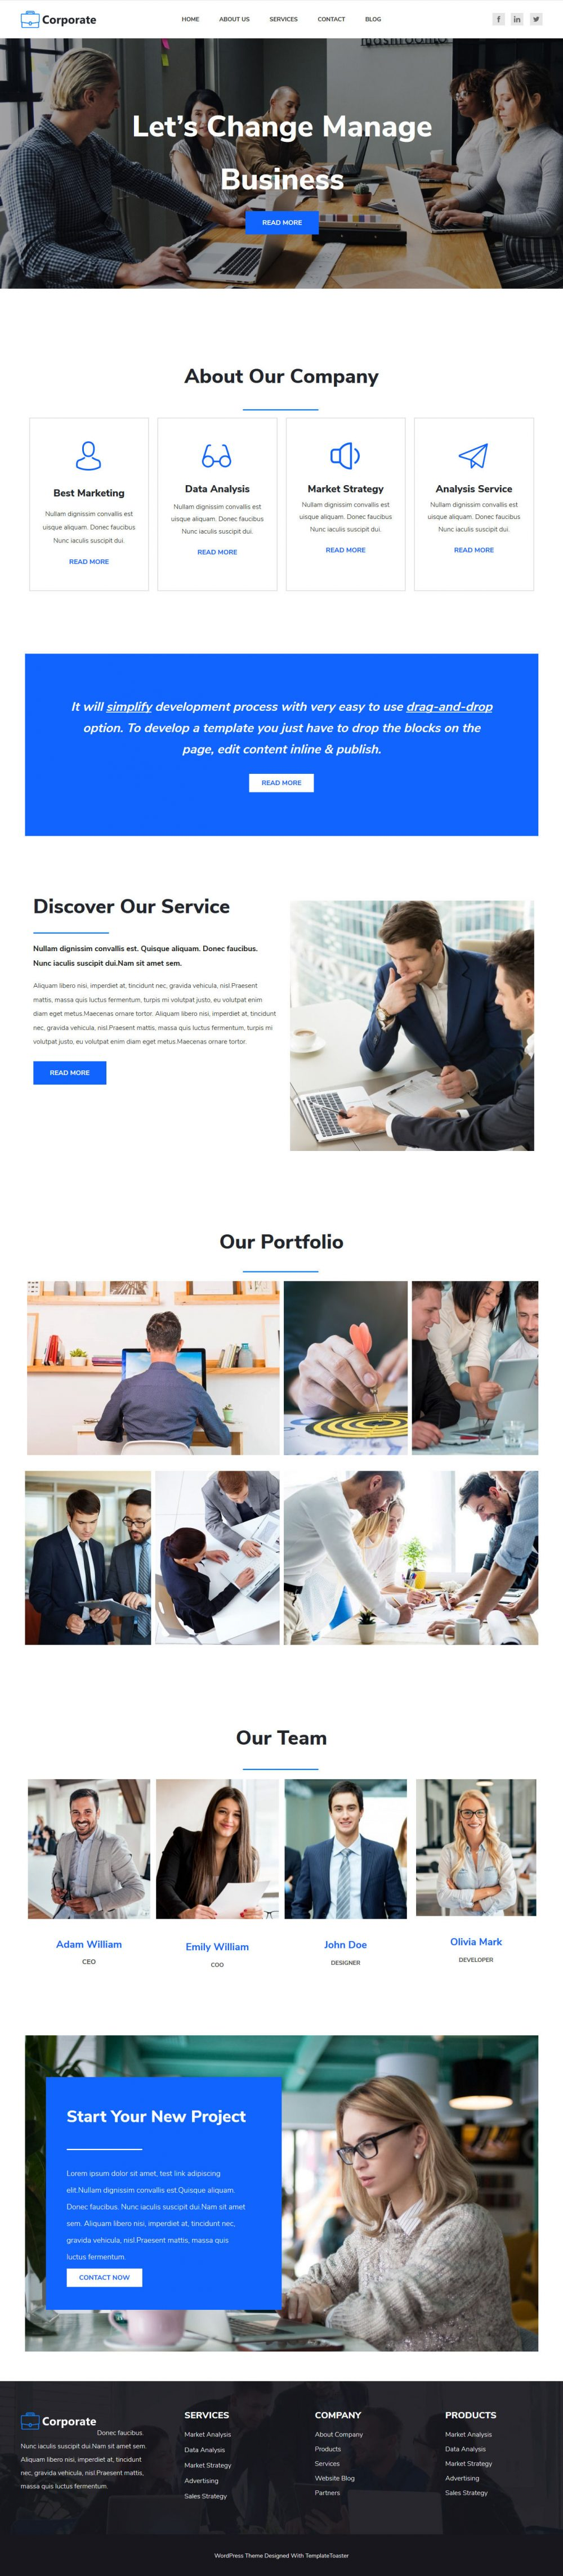 Corporate Business and Finance Drupal Theme